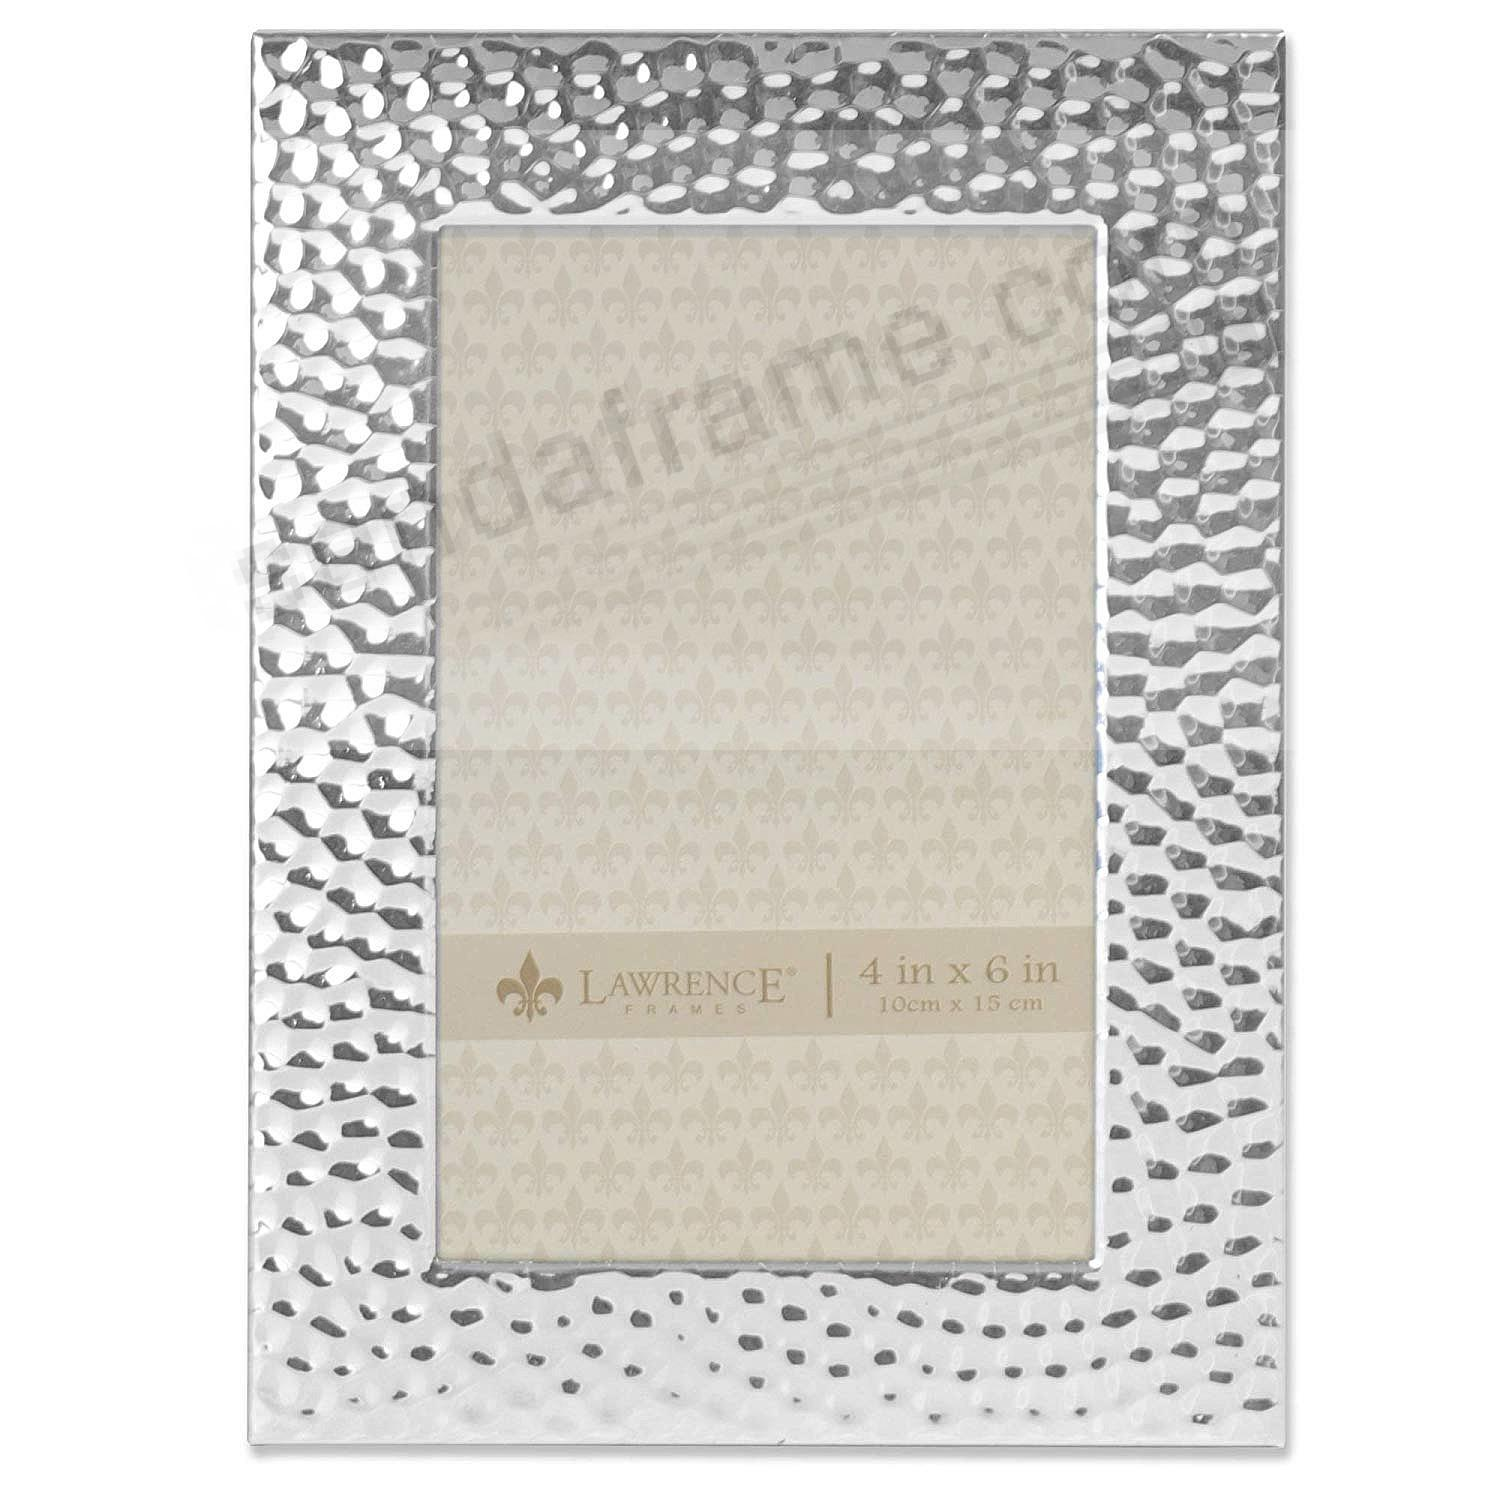 Hammered Silver finish 4x6 frame by Lawrence®